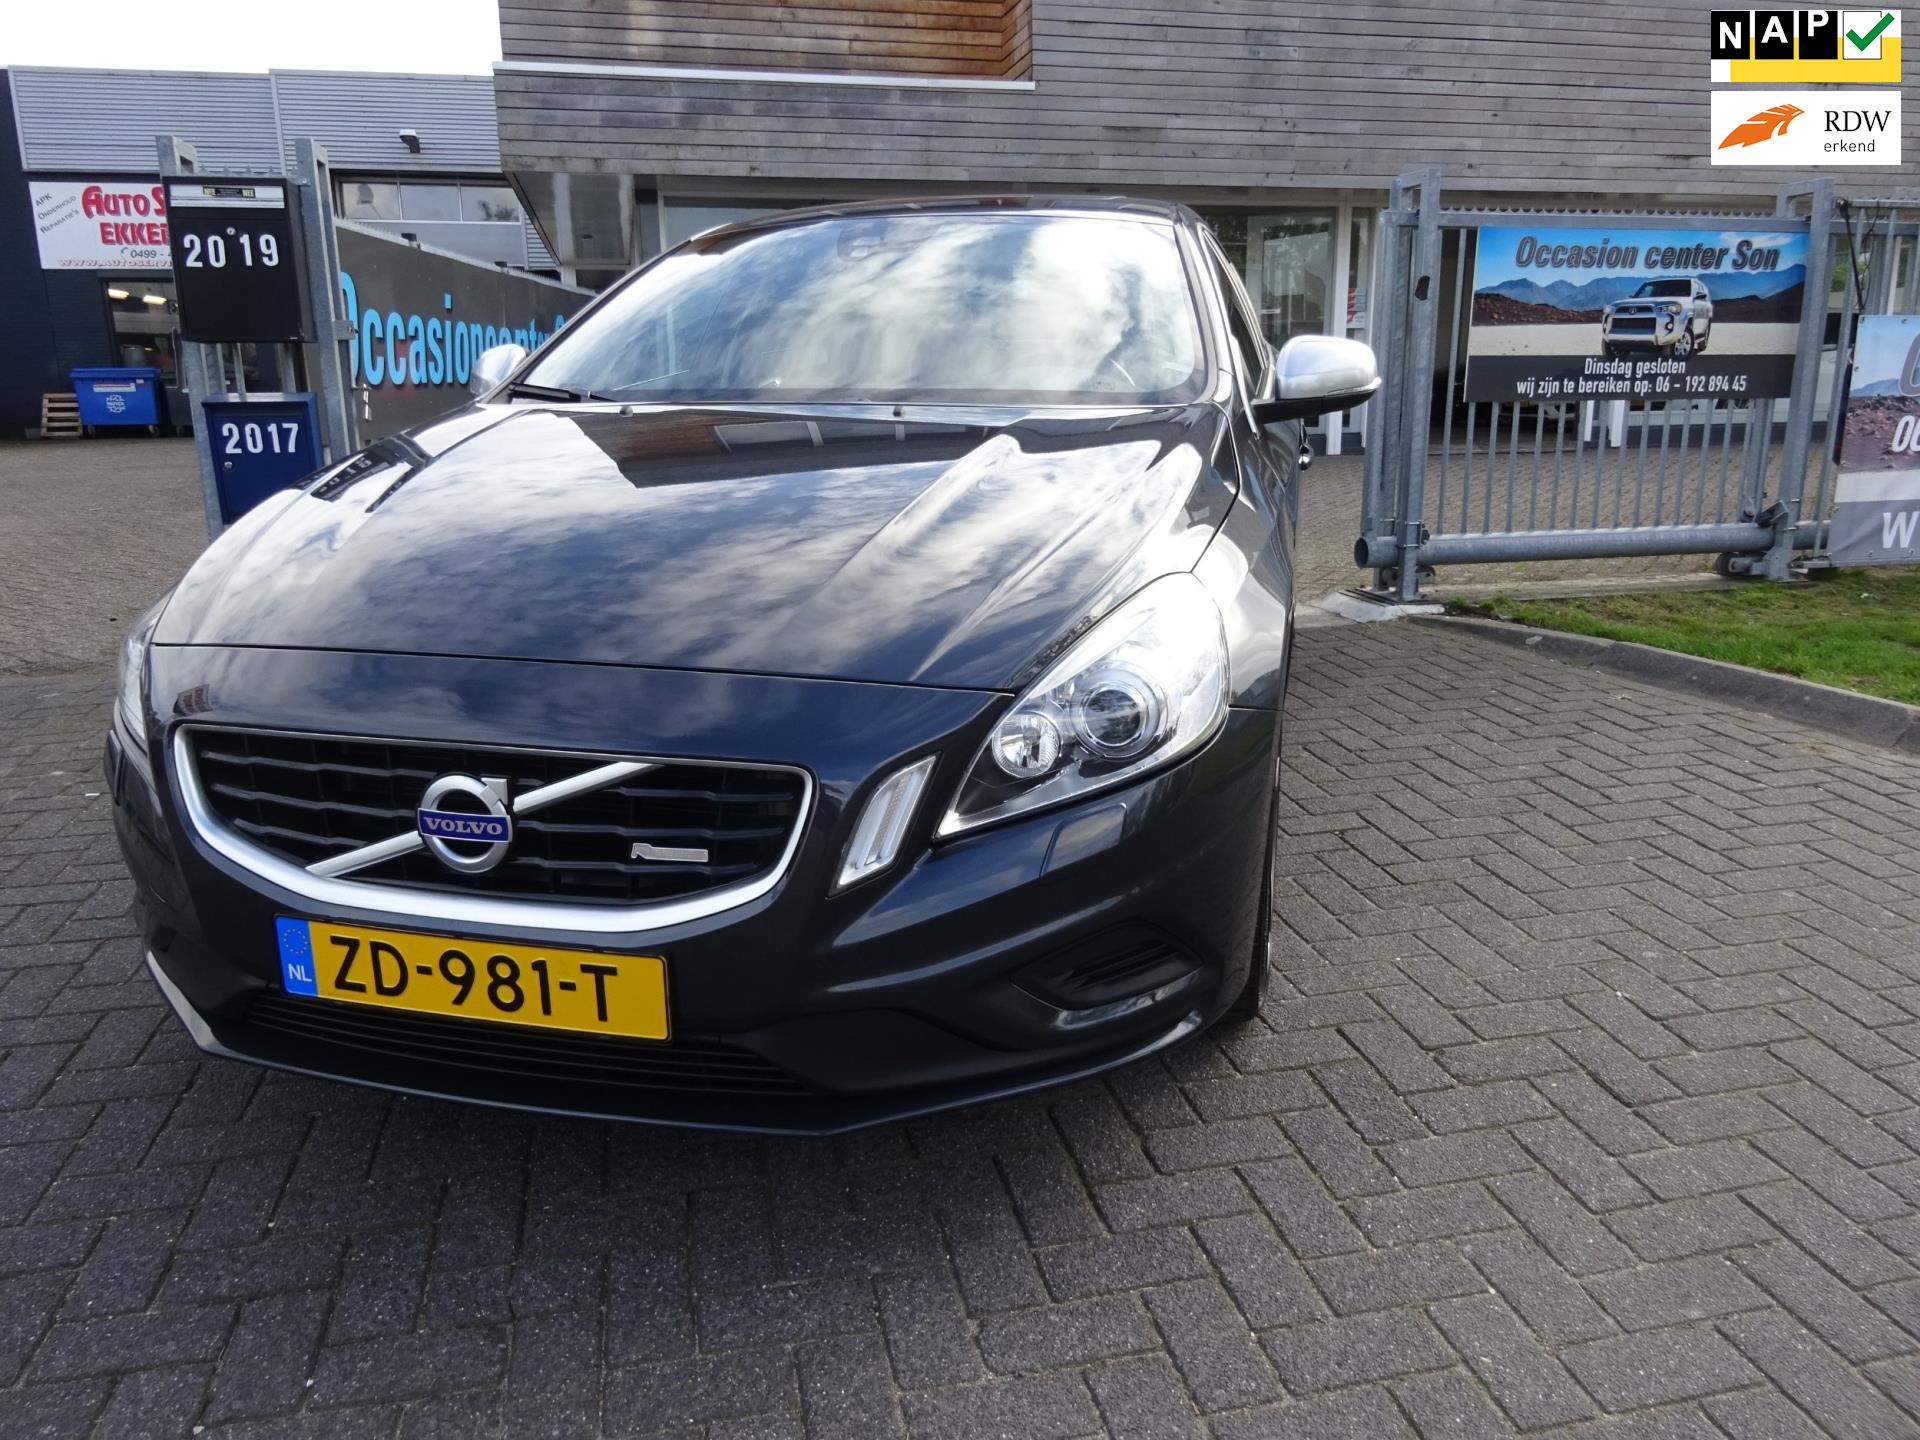 Volvo S60 occasion - Occasion Center Son B.V.